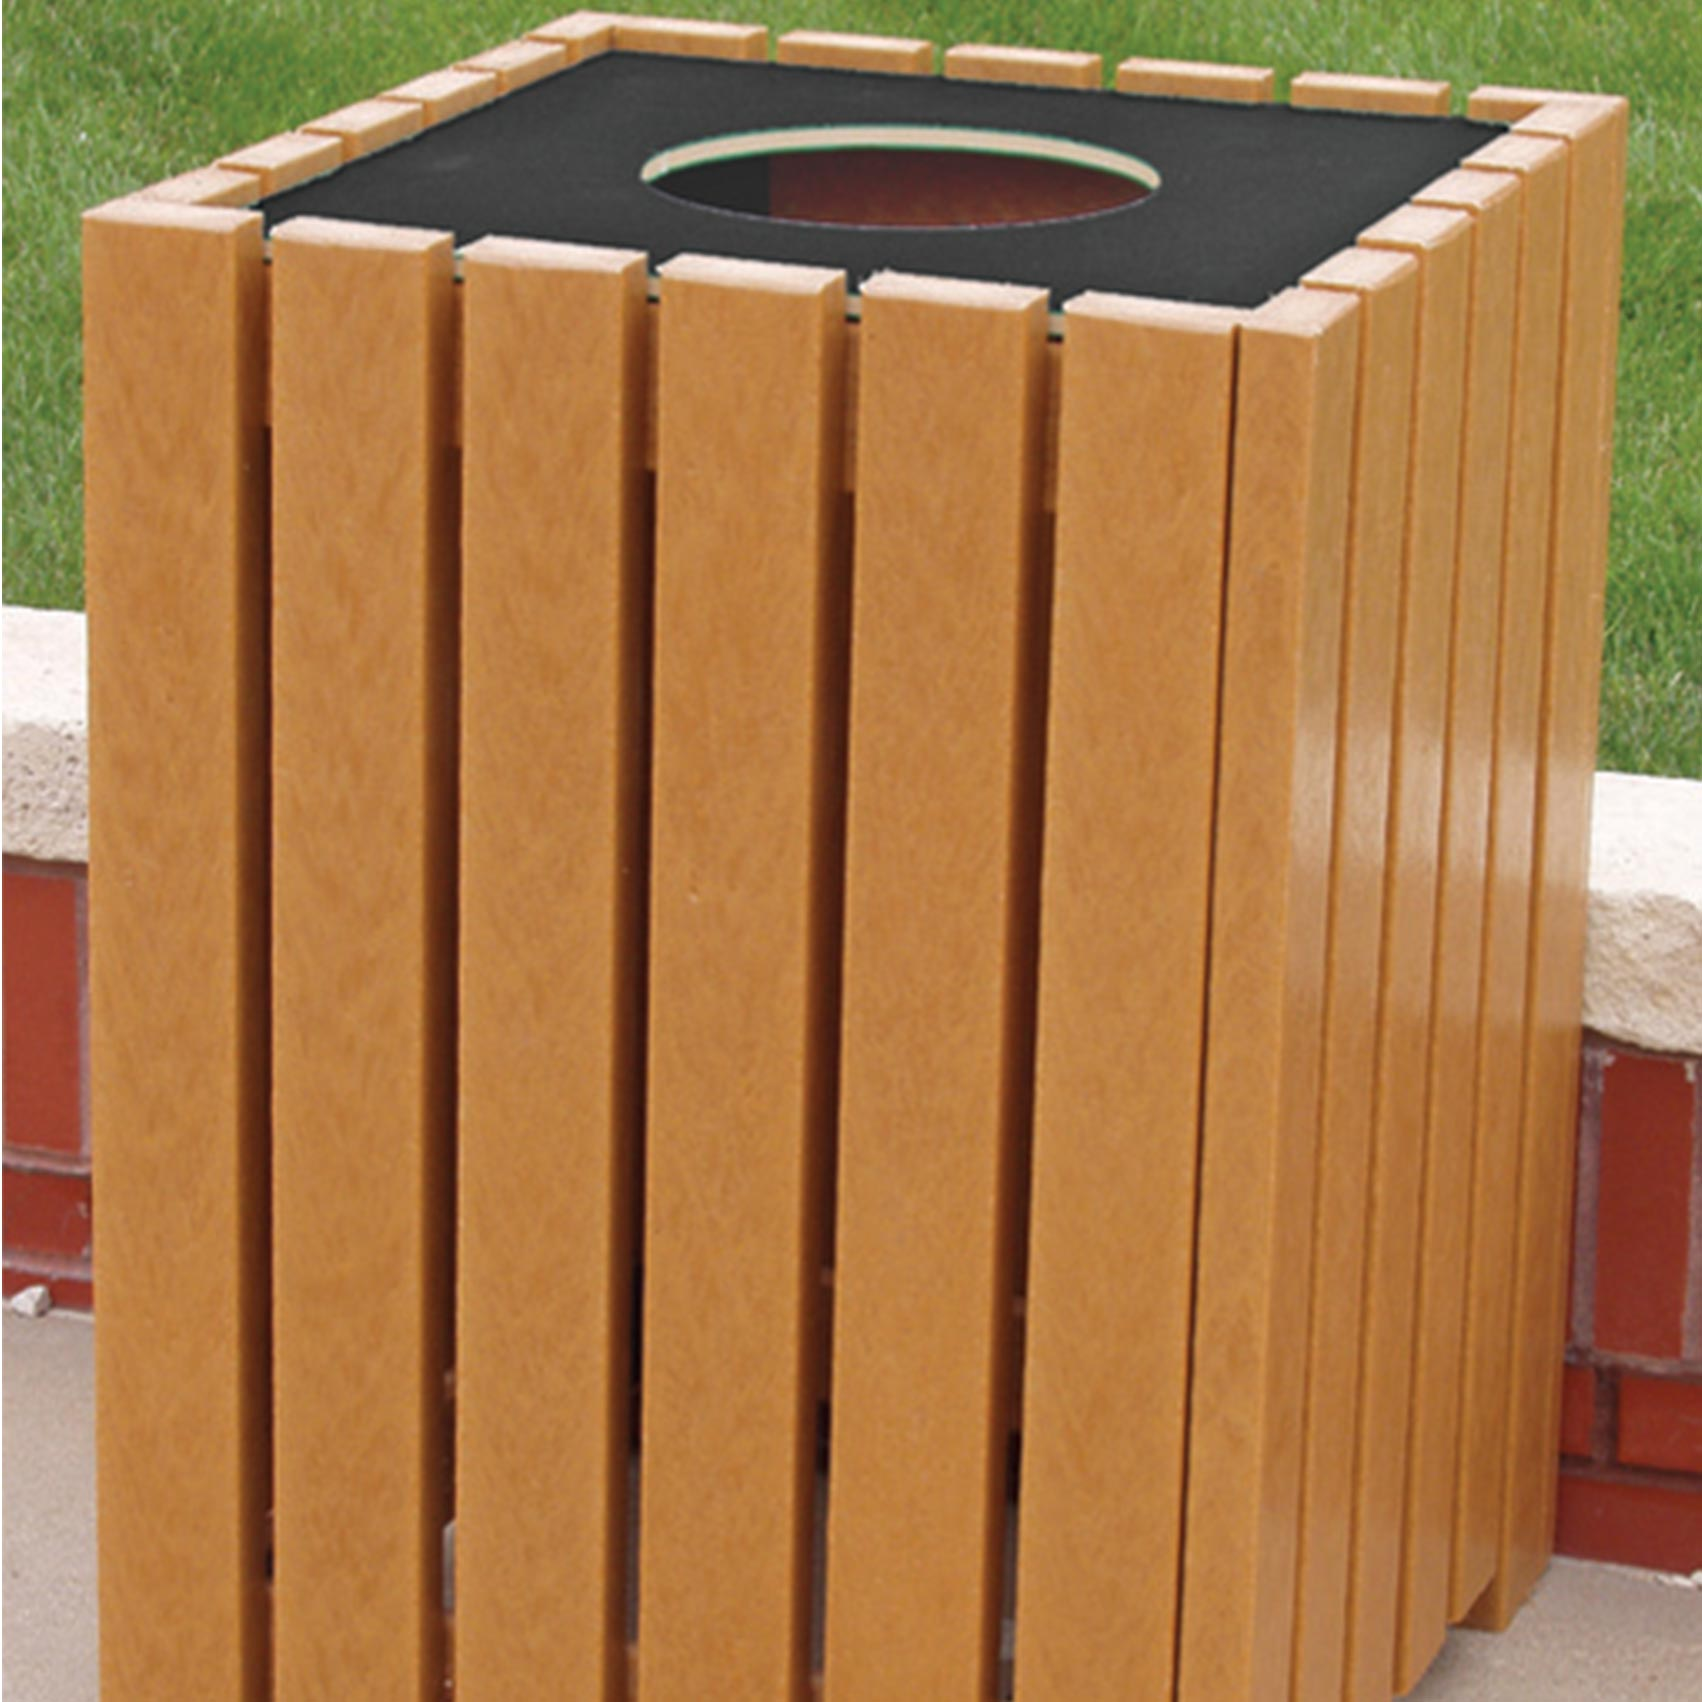 Standard / Heavy Duty Square Receptacle